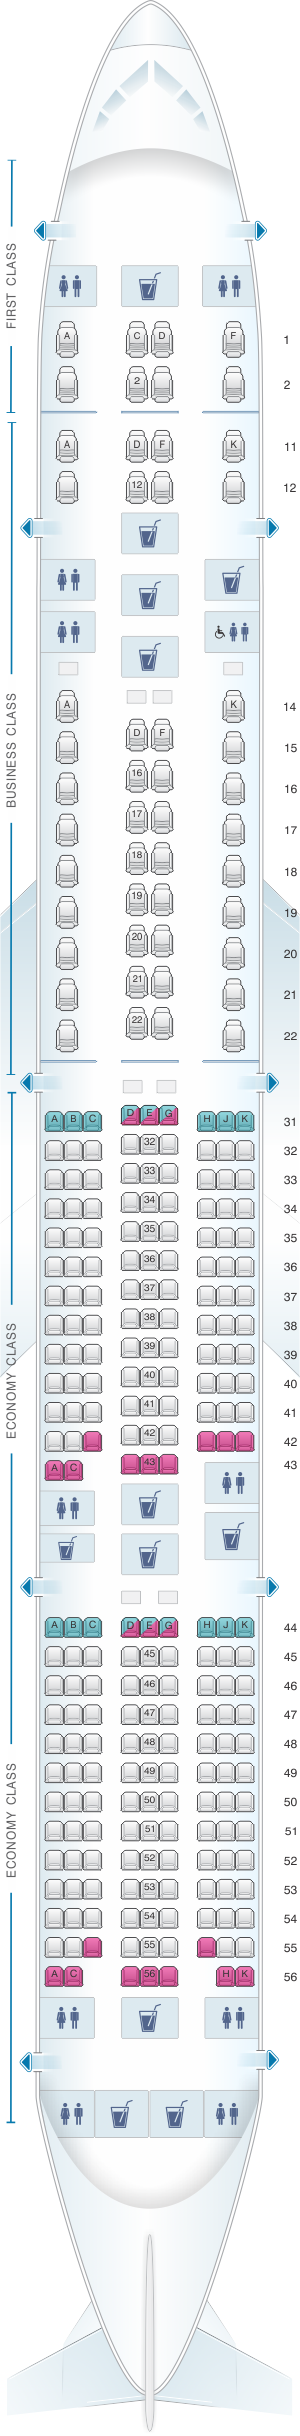 Seat Map Singapore Airlines Boeing B777 300ER three class | SeatMaestro